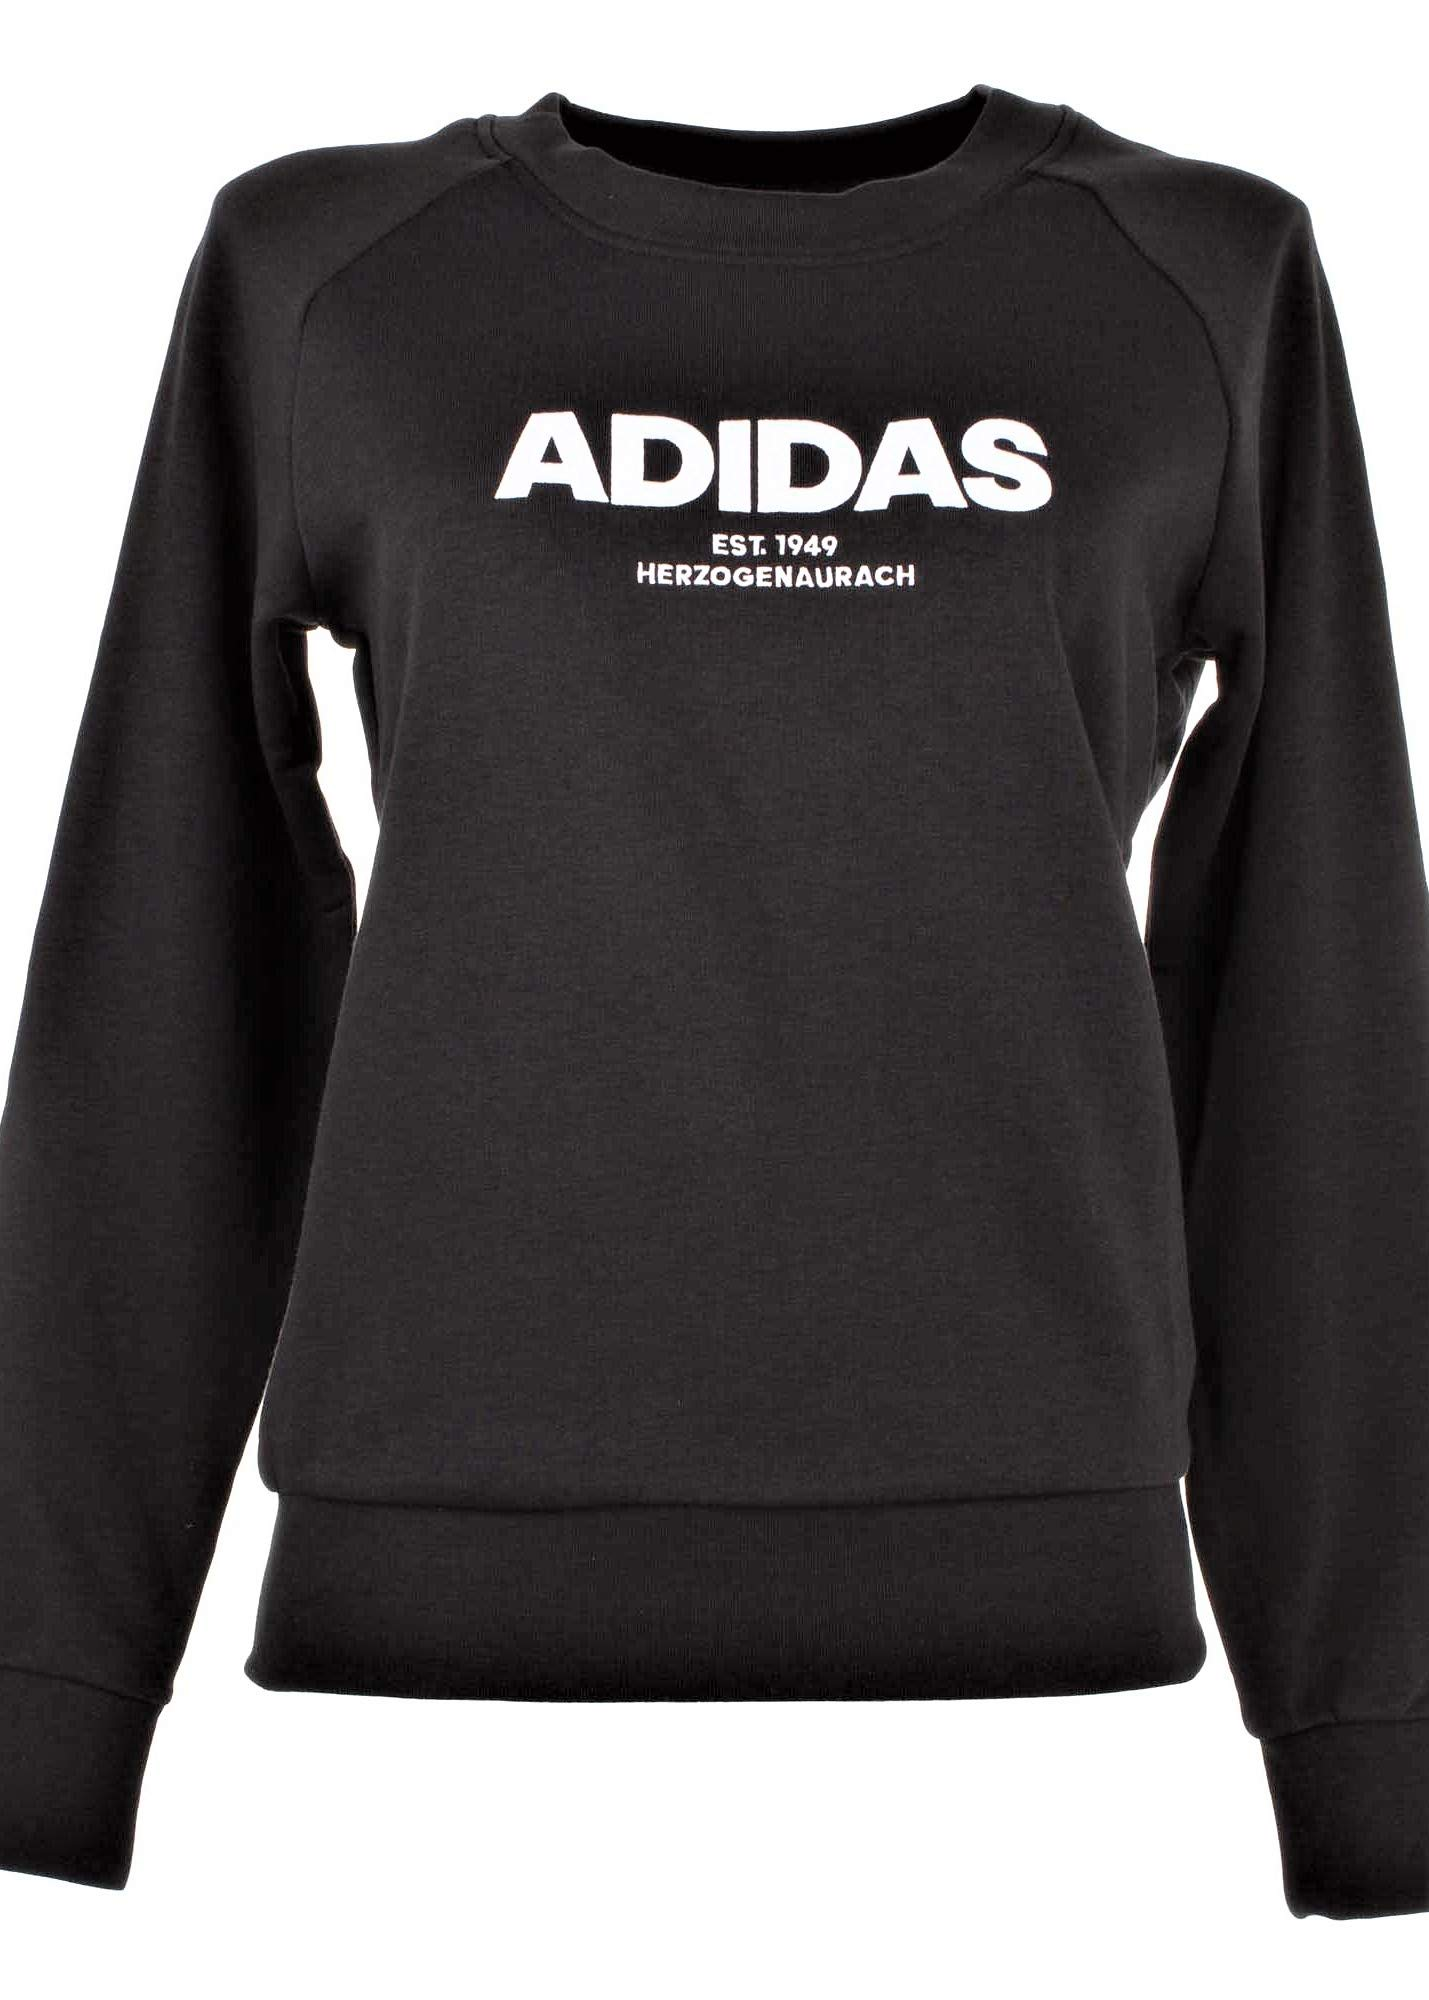 adidas Women Sweatshirts All Cap Running Black Fashion Training Gym CZ5690 New (M) by adidas